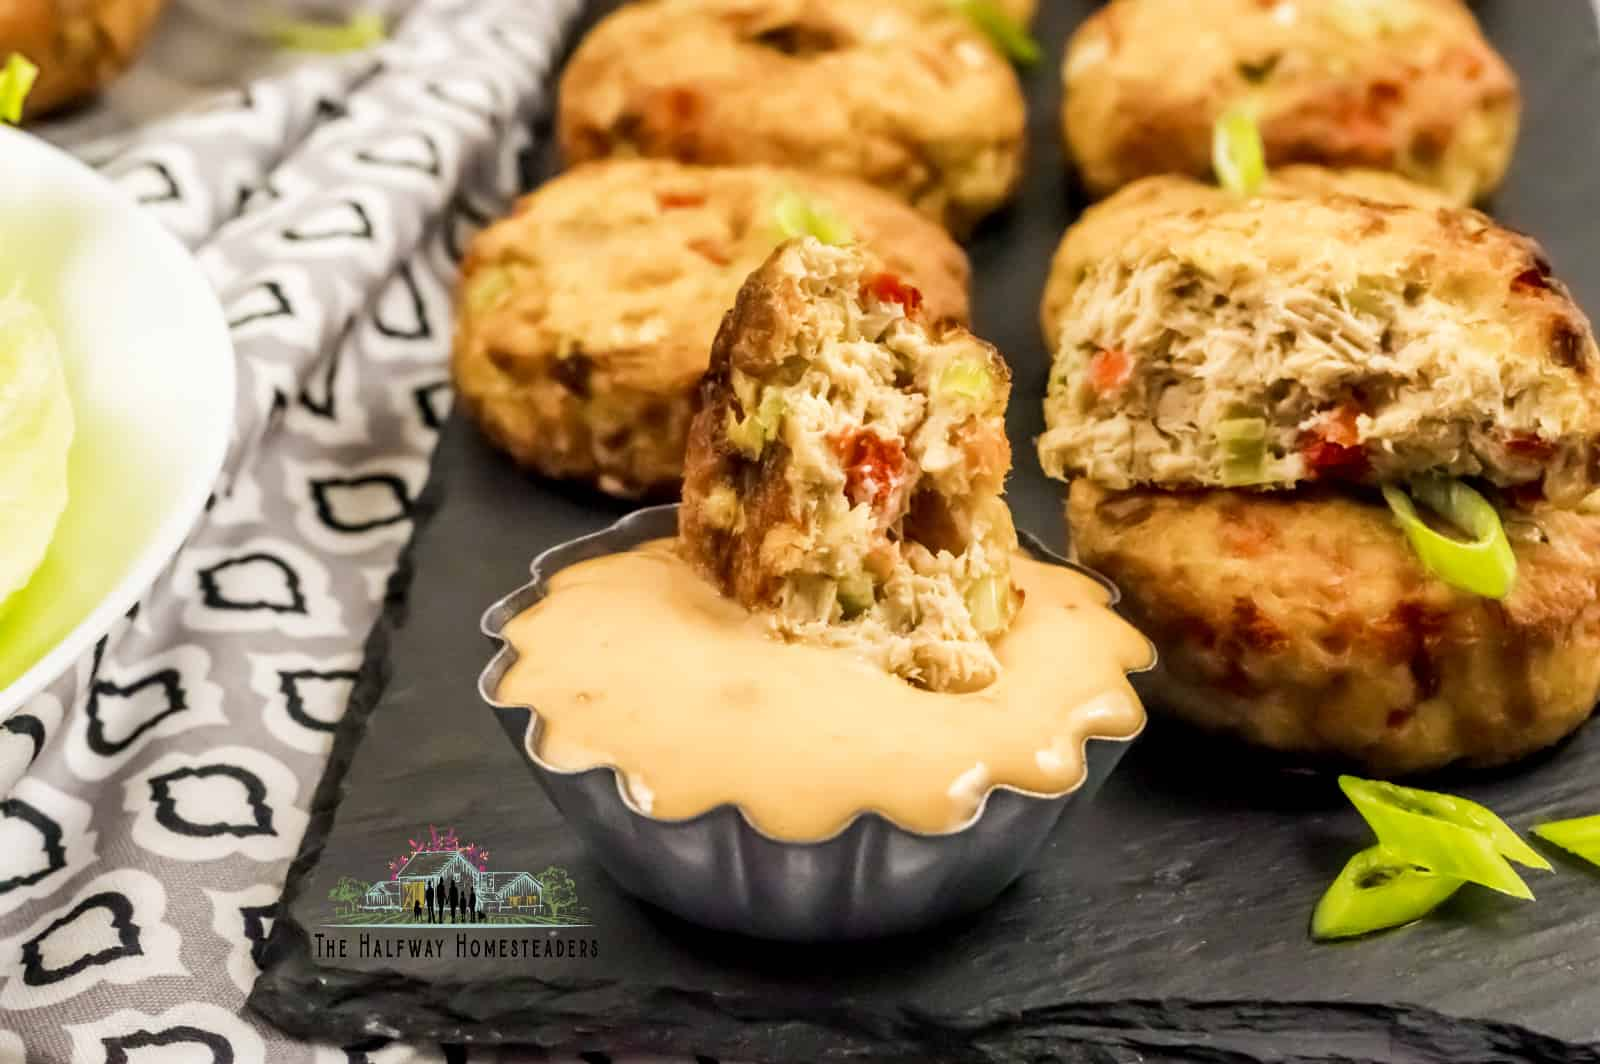 keto salmon cakes recipe, high protein recipe, keto recipe that is healthy as well using air fryer recipe method and keto sauce. Low carb dip recipe for salmon patties